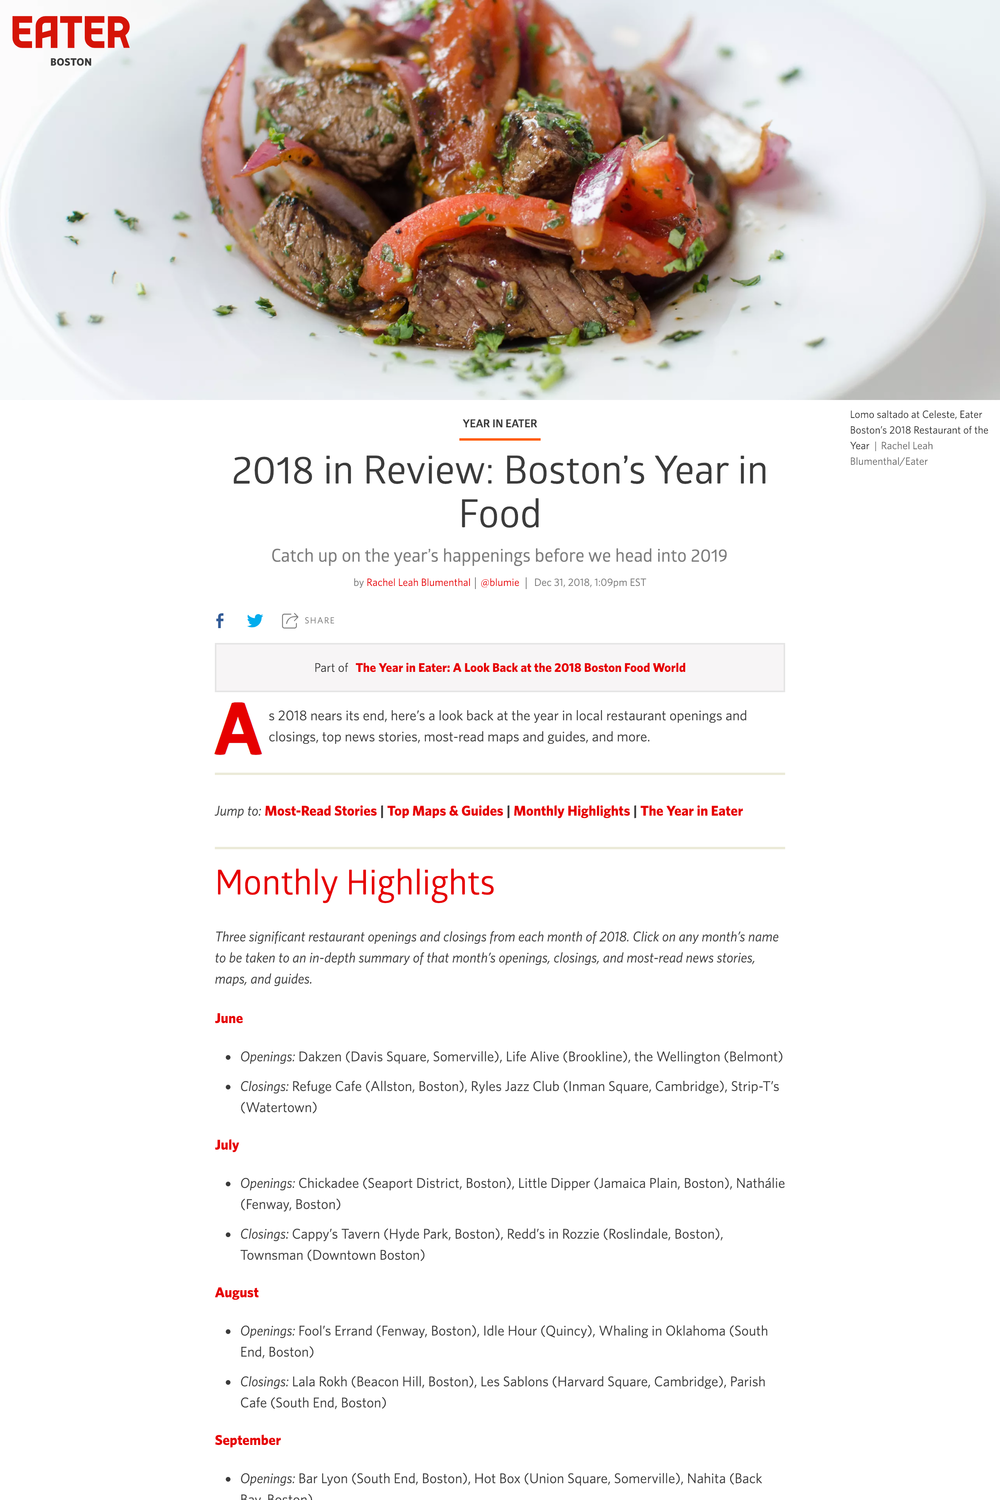 2018.12.31_Eater Boston_Life Alive Brookline, original, cropped 2x3.png